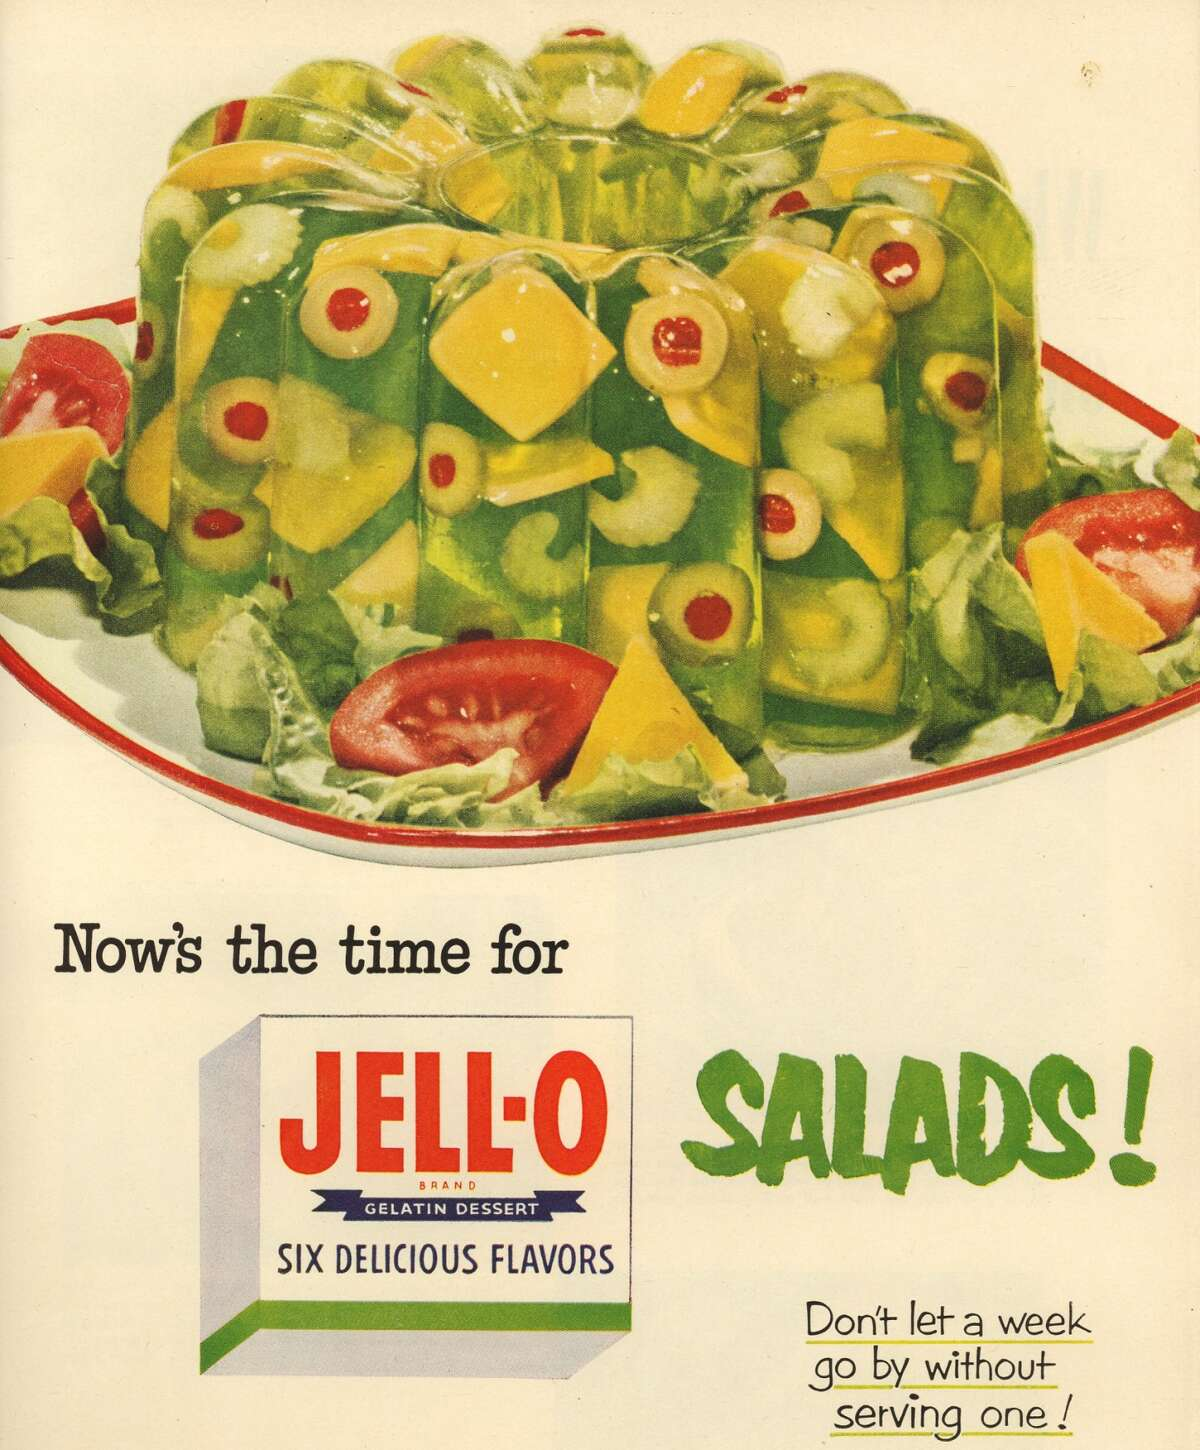 1. I love to cook and bake but don't ever ask me to include Jello in a recipe, or canned beets -- two foods I simply hate. Need I say more?